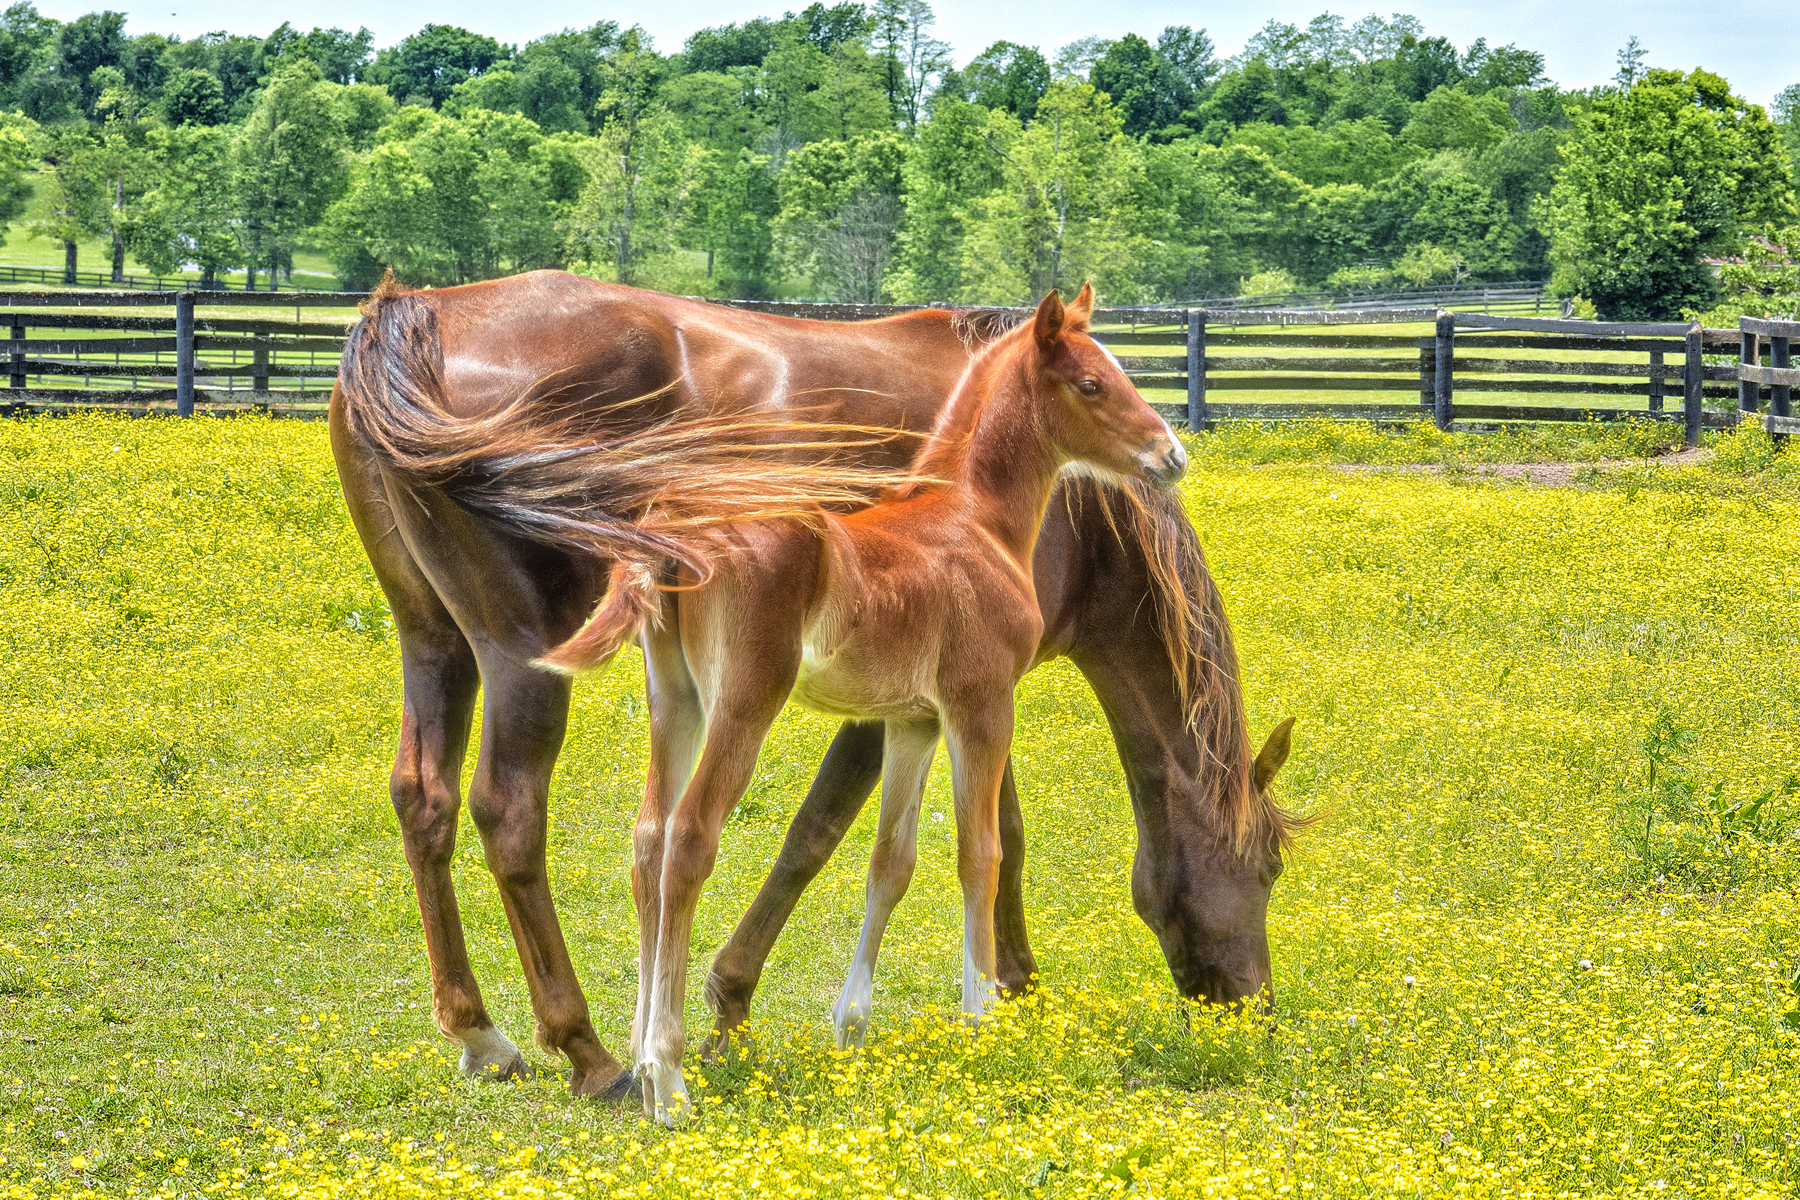 MOM AND BABE - Taken on a drive through central Kentucky in the spring. At that time of the year you are given many oppoirtunities for shots like this.